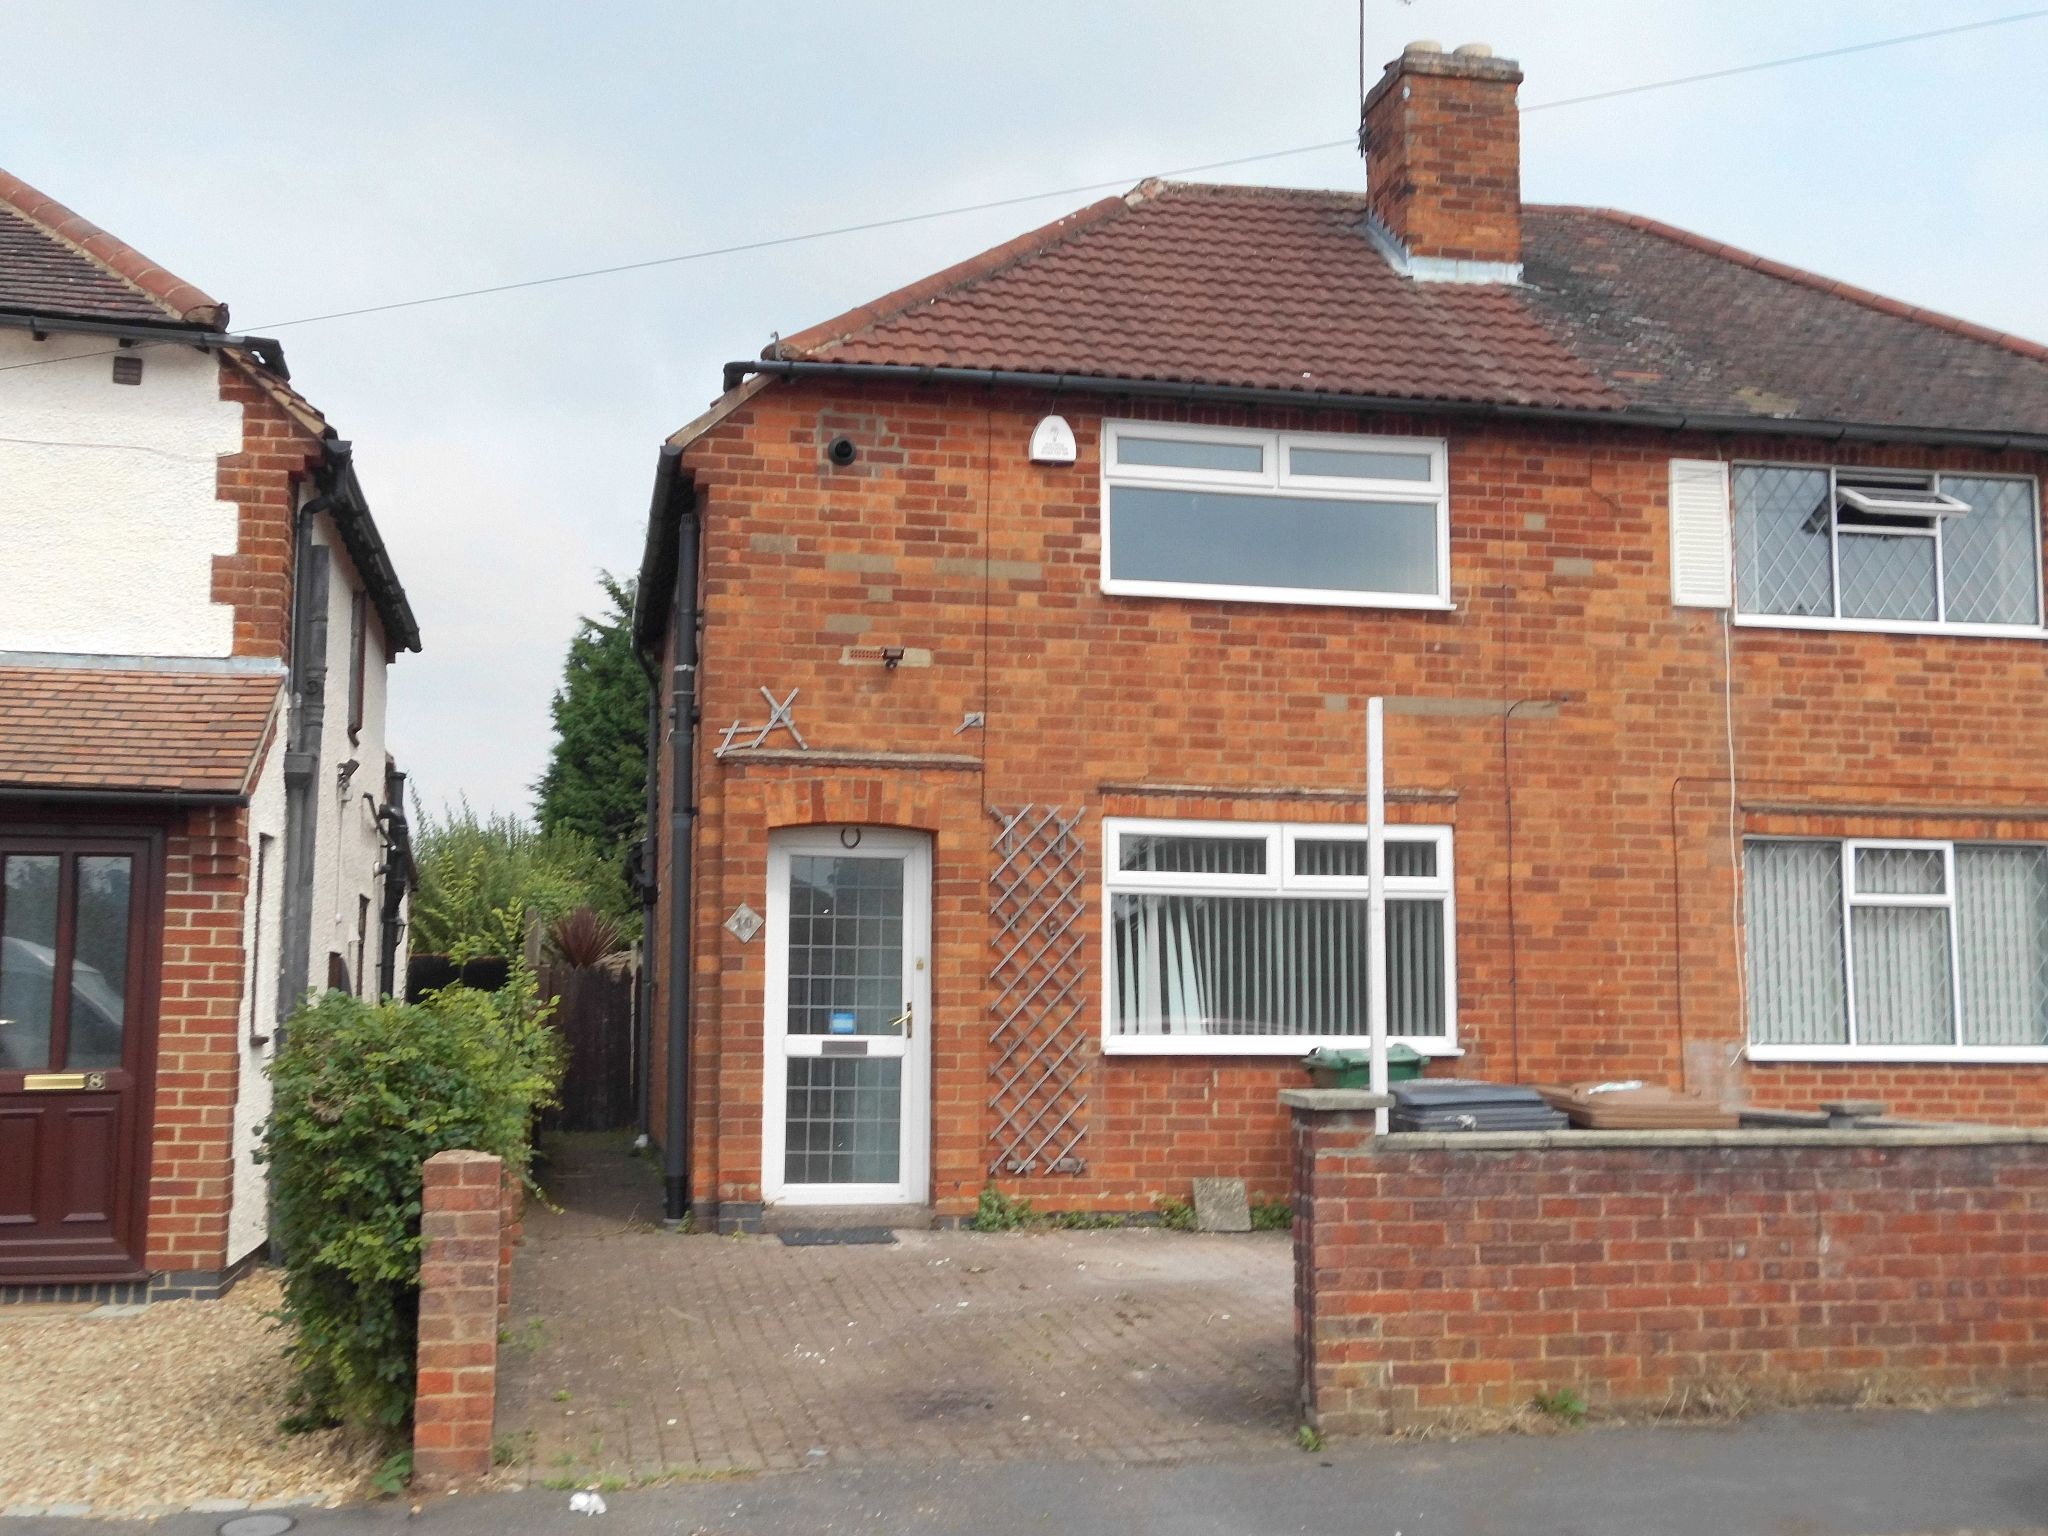 3 bedroom semi-detached house Reserved in Leicester - Photograph 1.